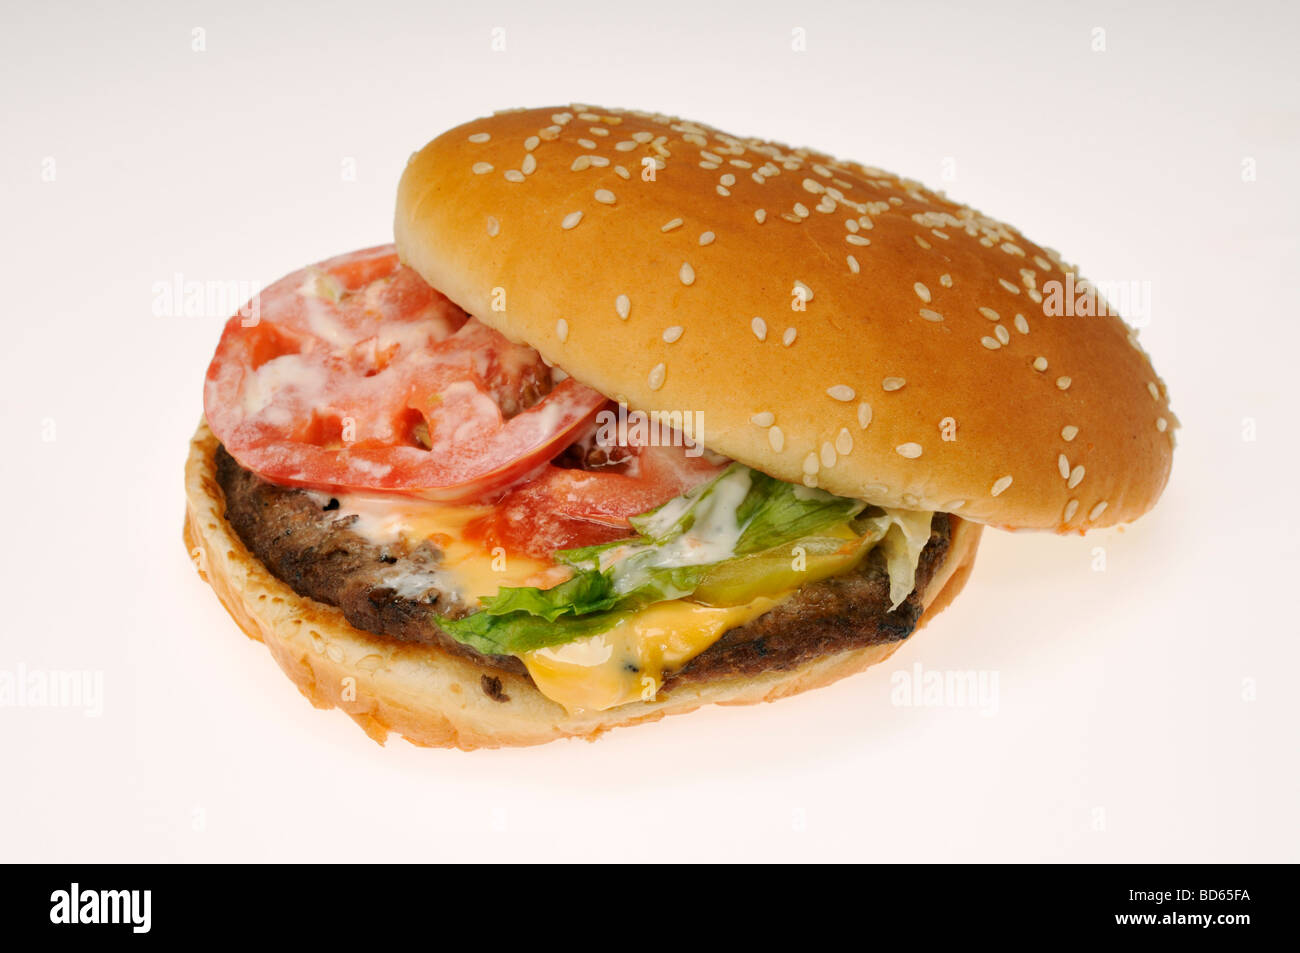 Burger King Whopper Cheeseburger With Tomato Lettuce And Mayonnaise On Bun